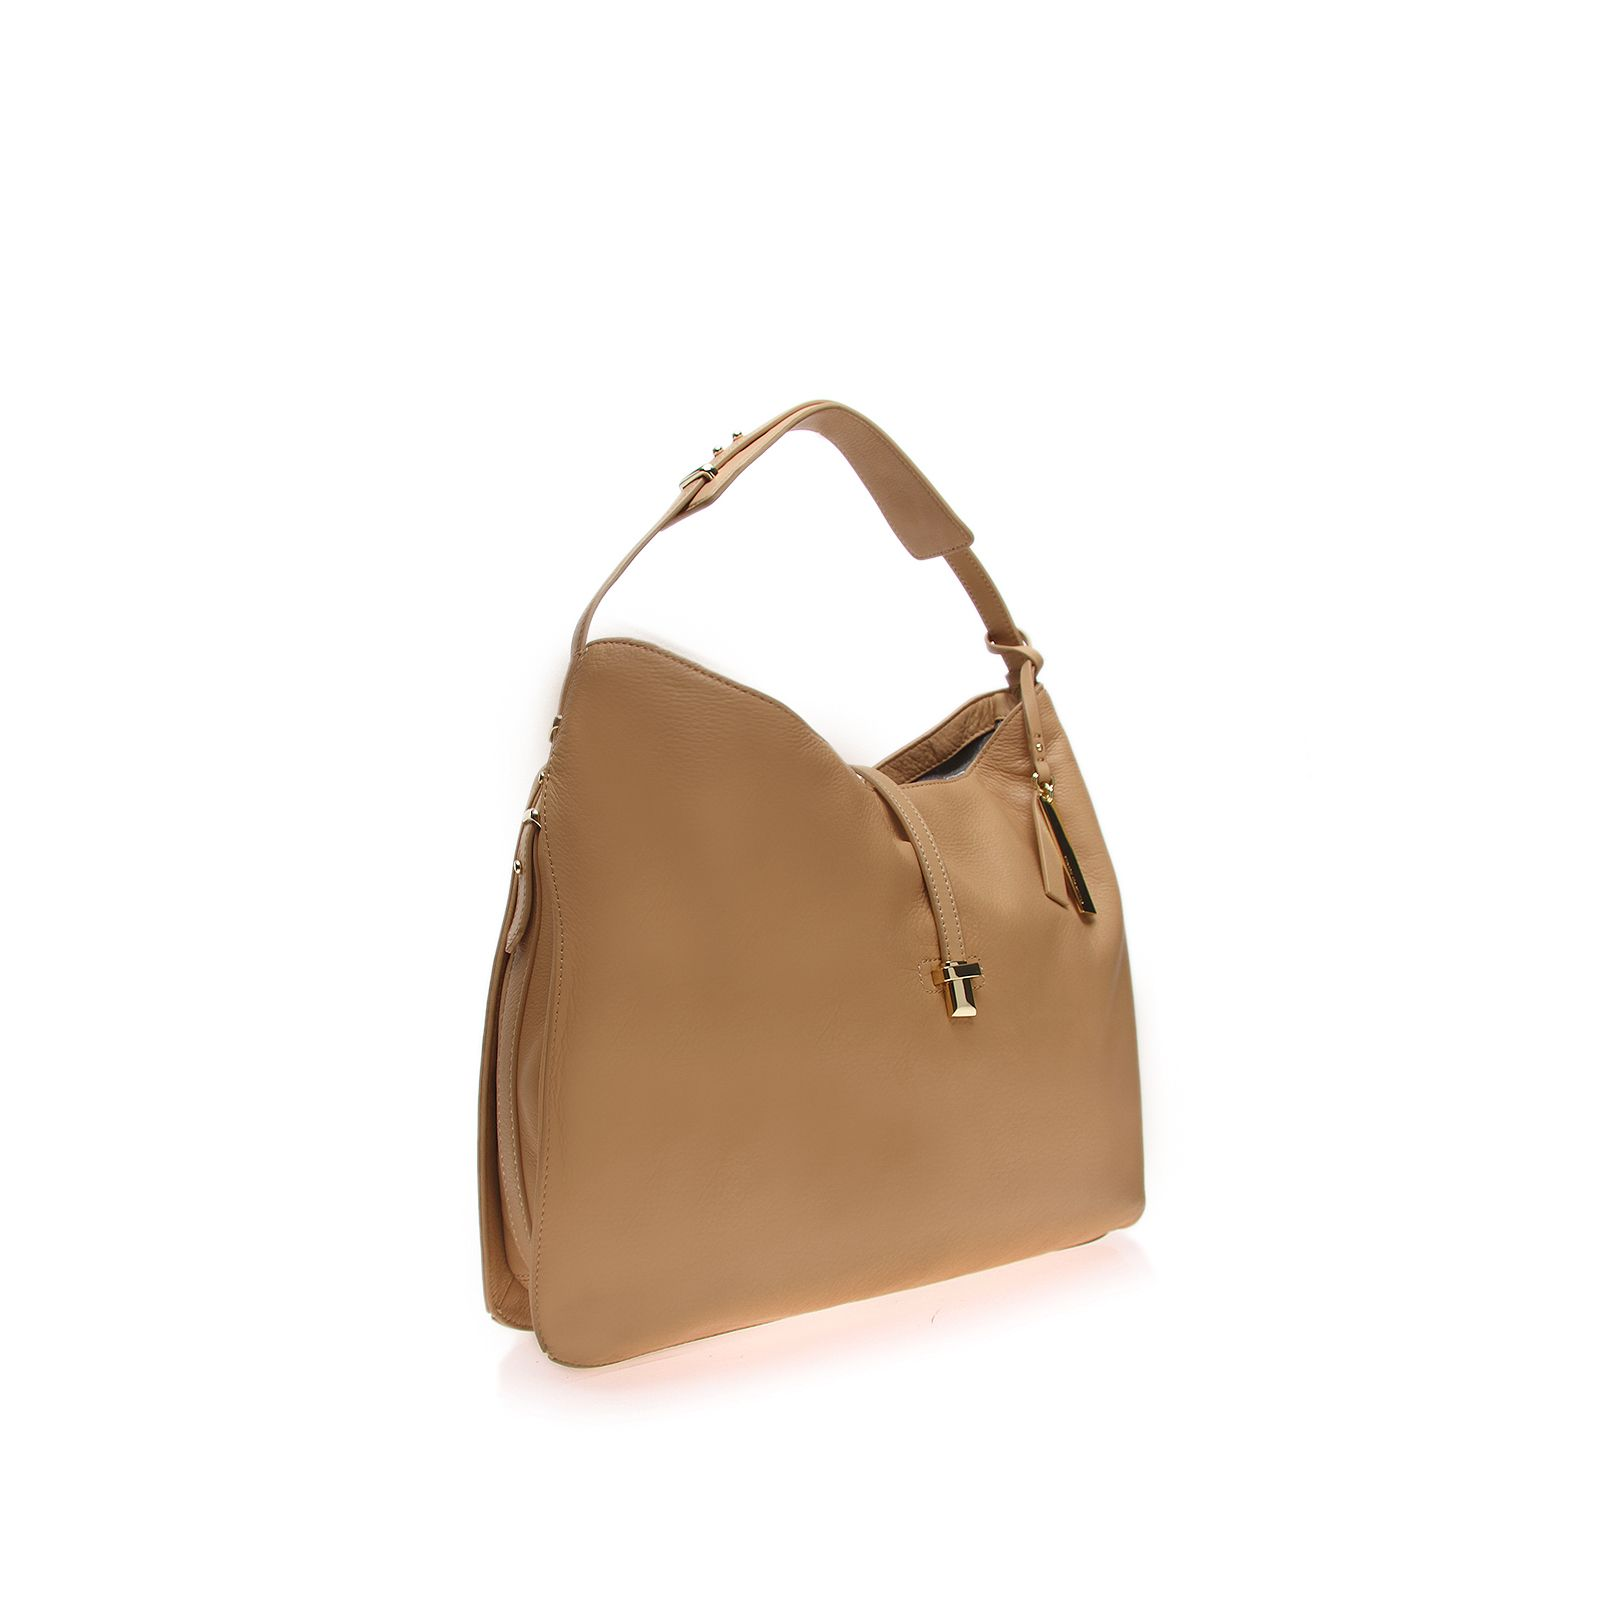 Molly shoulder bag